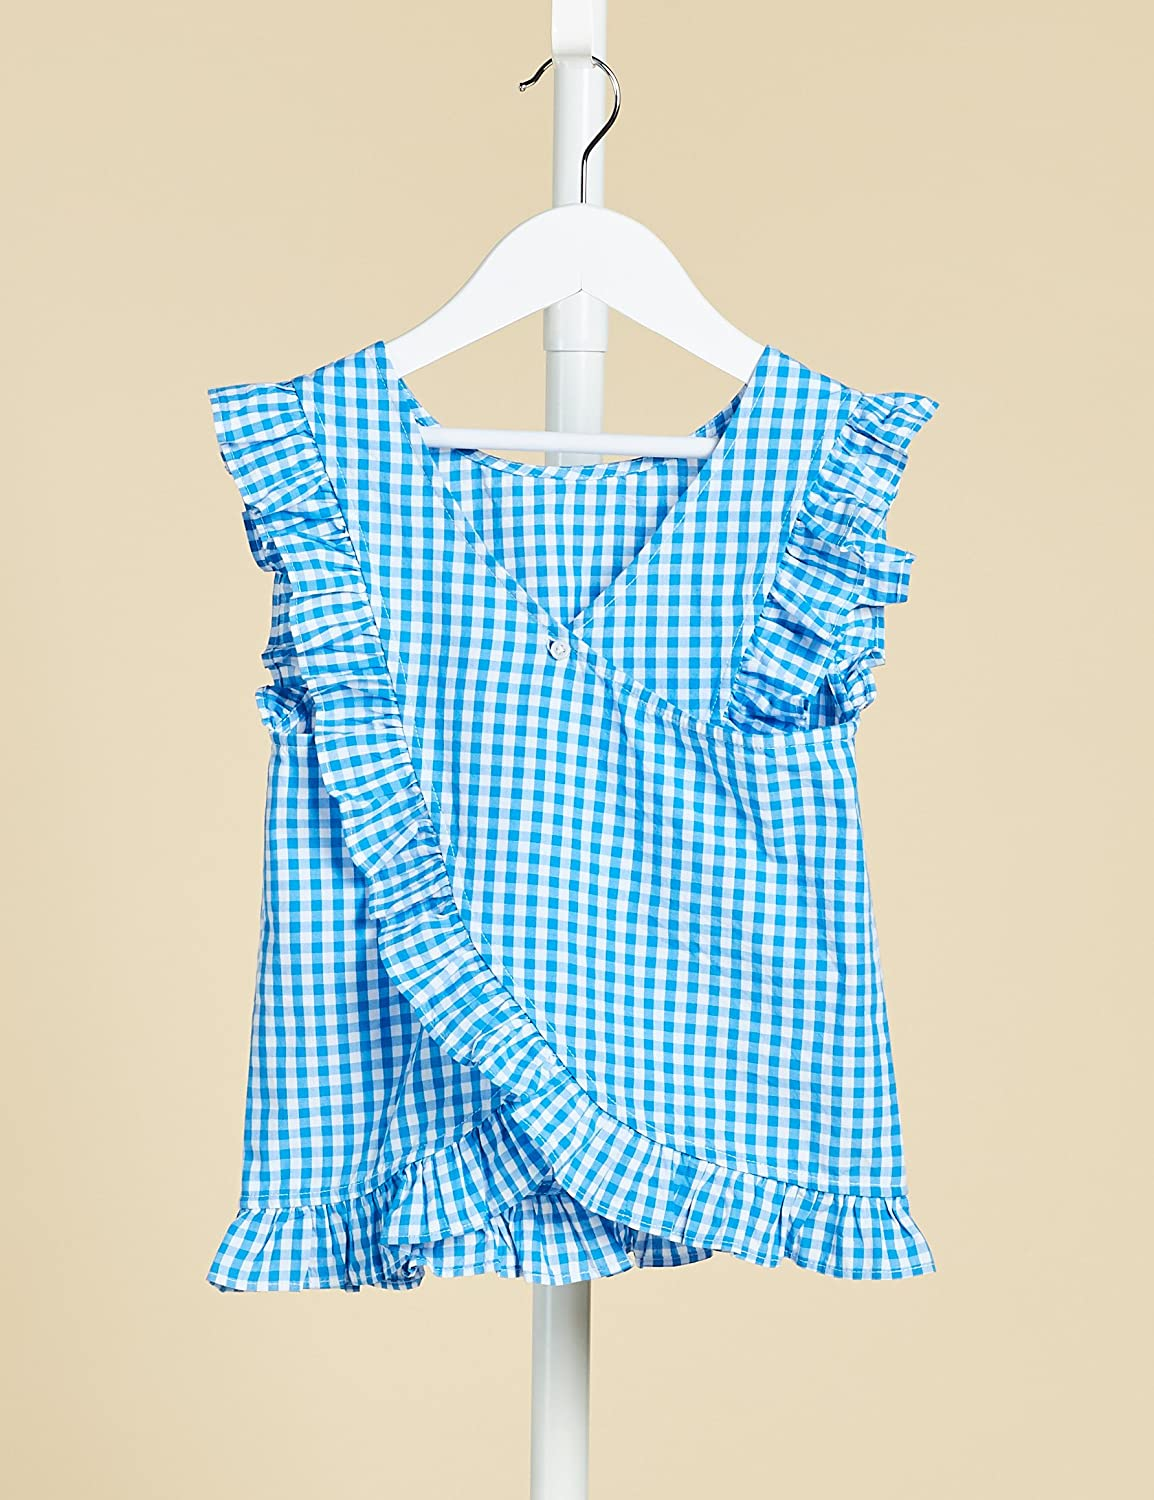 Marque RED WAGON Blouse Vichy /à Volants Fille